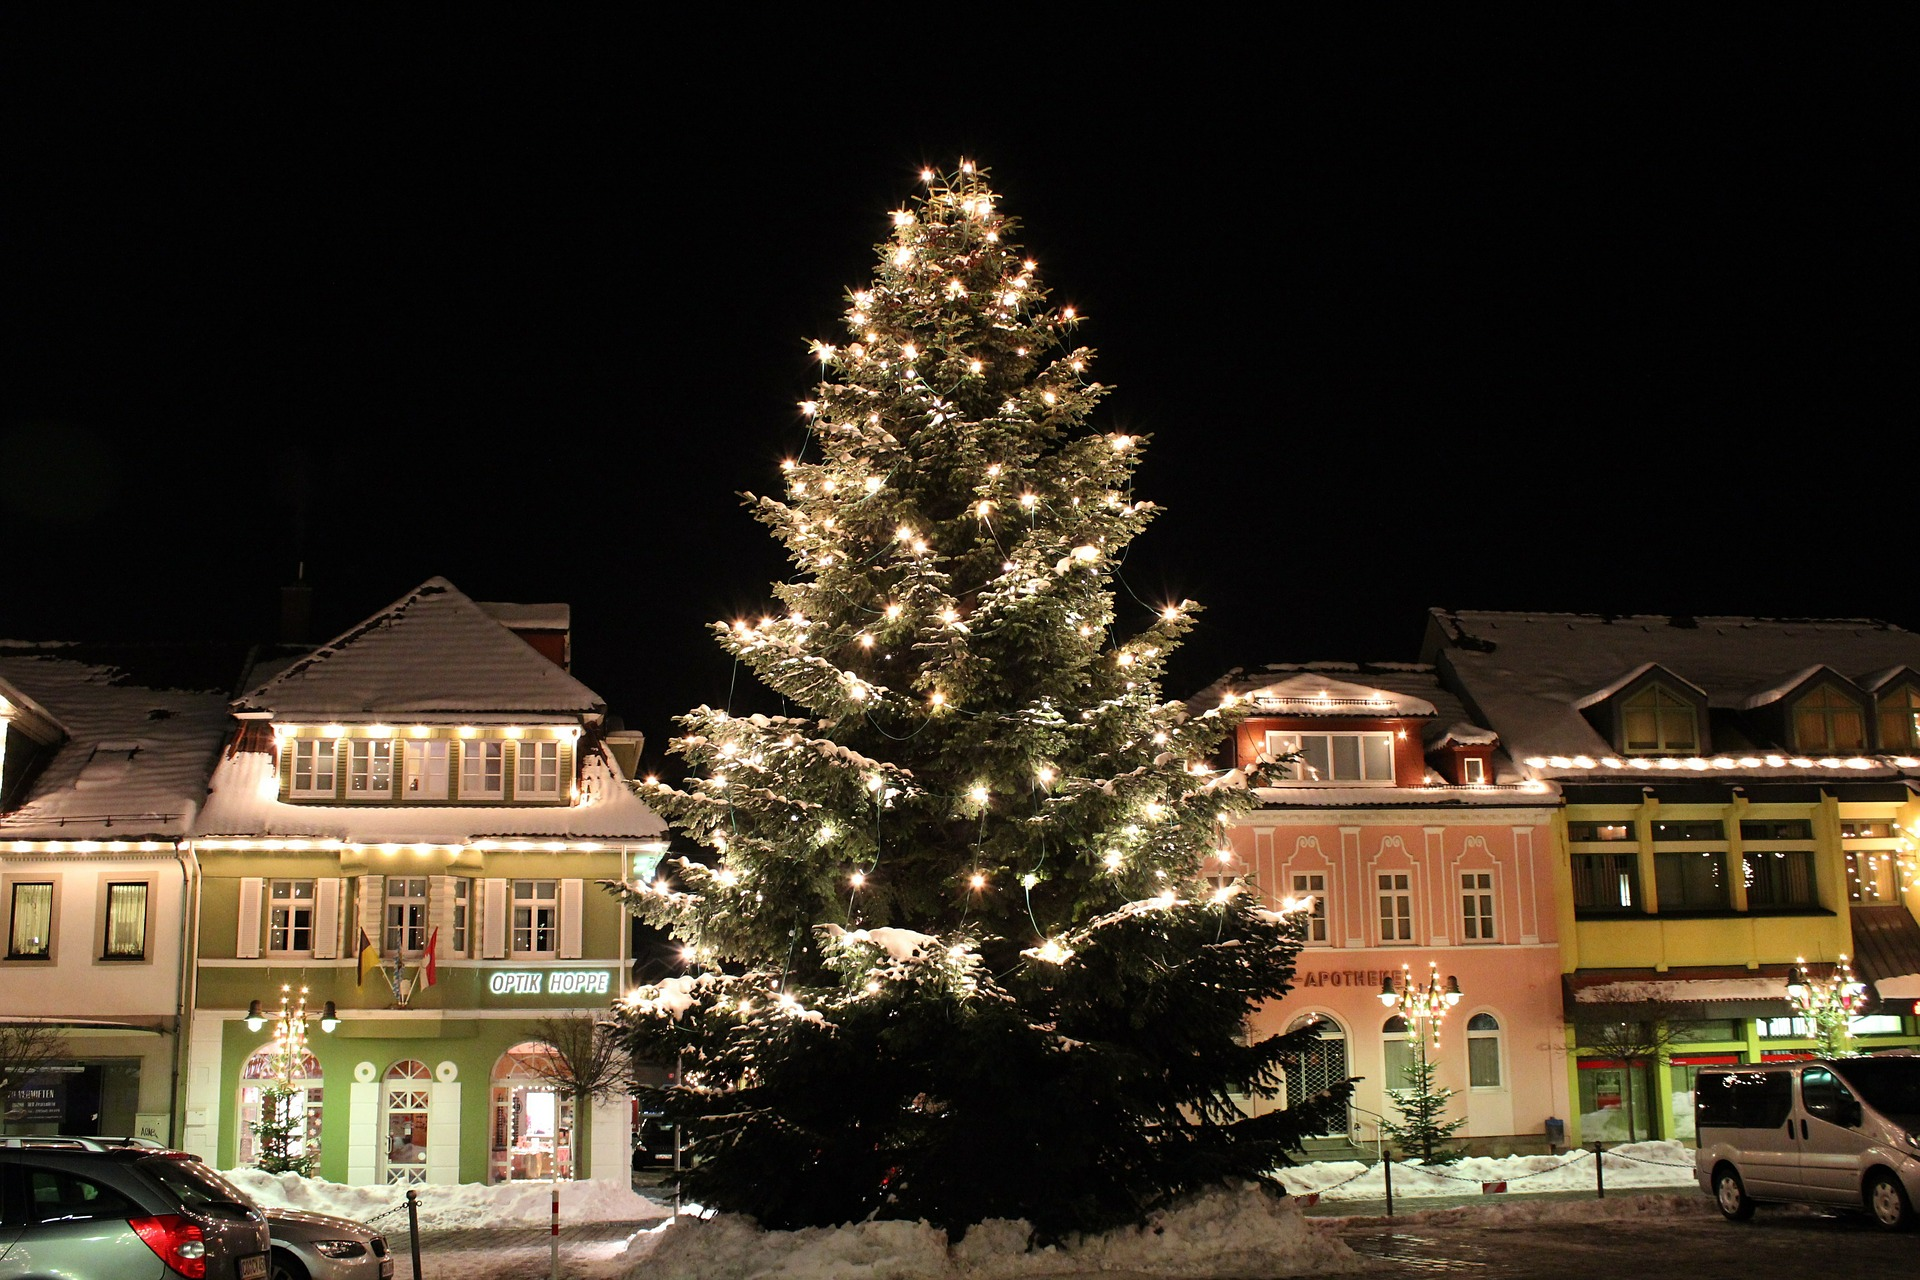 A beautifully lit tree takes center stage.